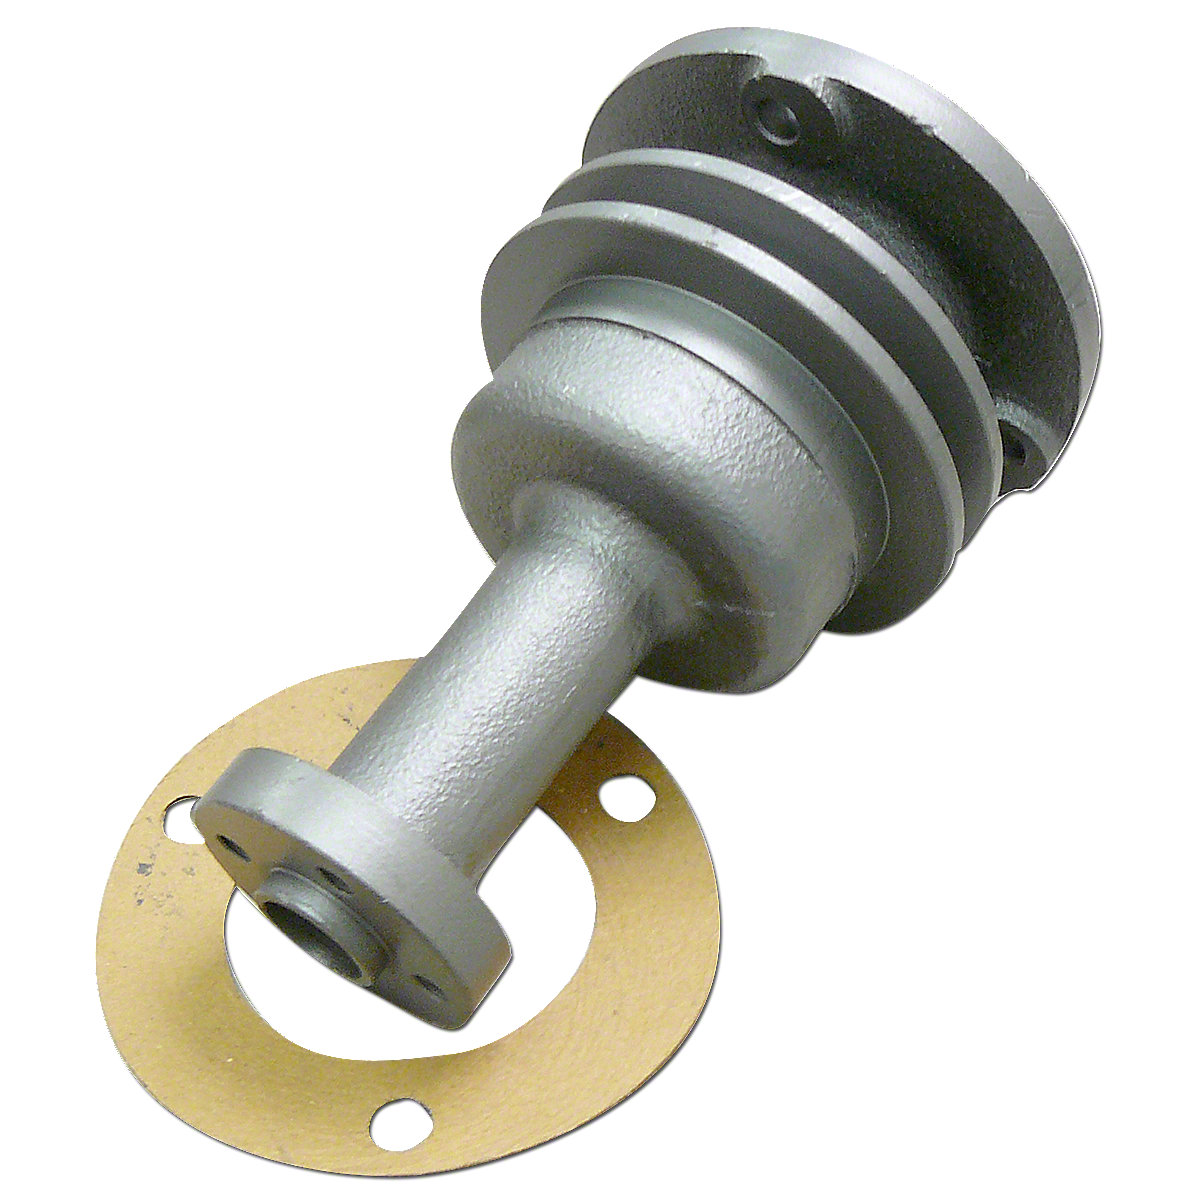 New Water Pump With Pulley For Massey Ferguson: TO35, 135, 230, 235, 245, 35.